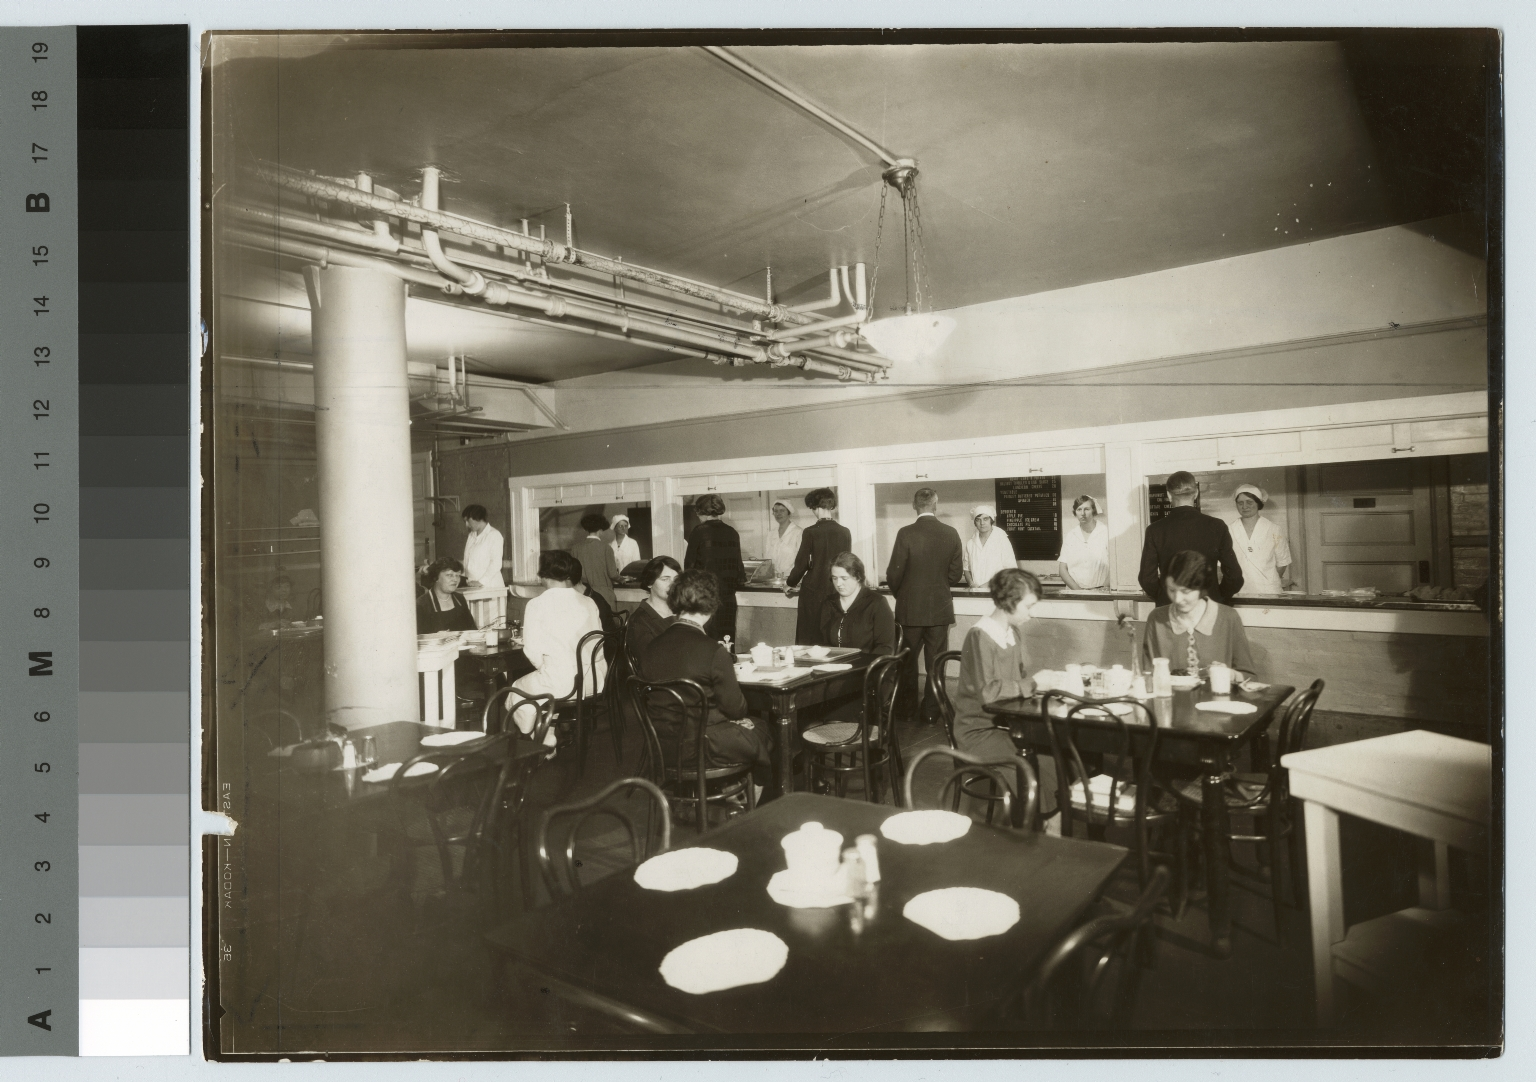 Eastman Building cafeteria, Rochester Athenaeum and Mechanics Institute [1920-1930]